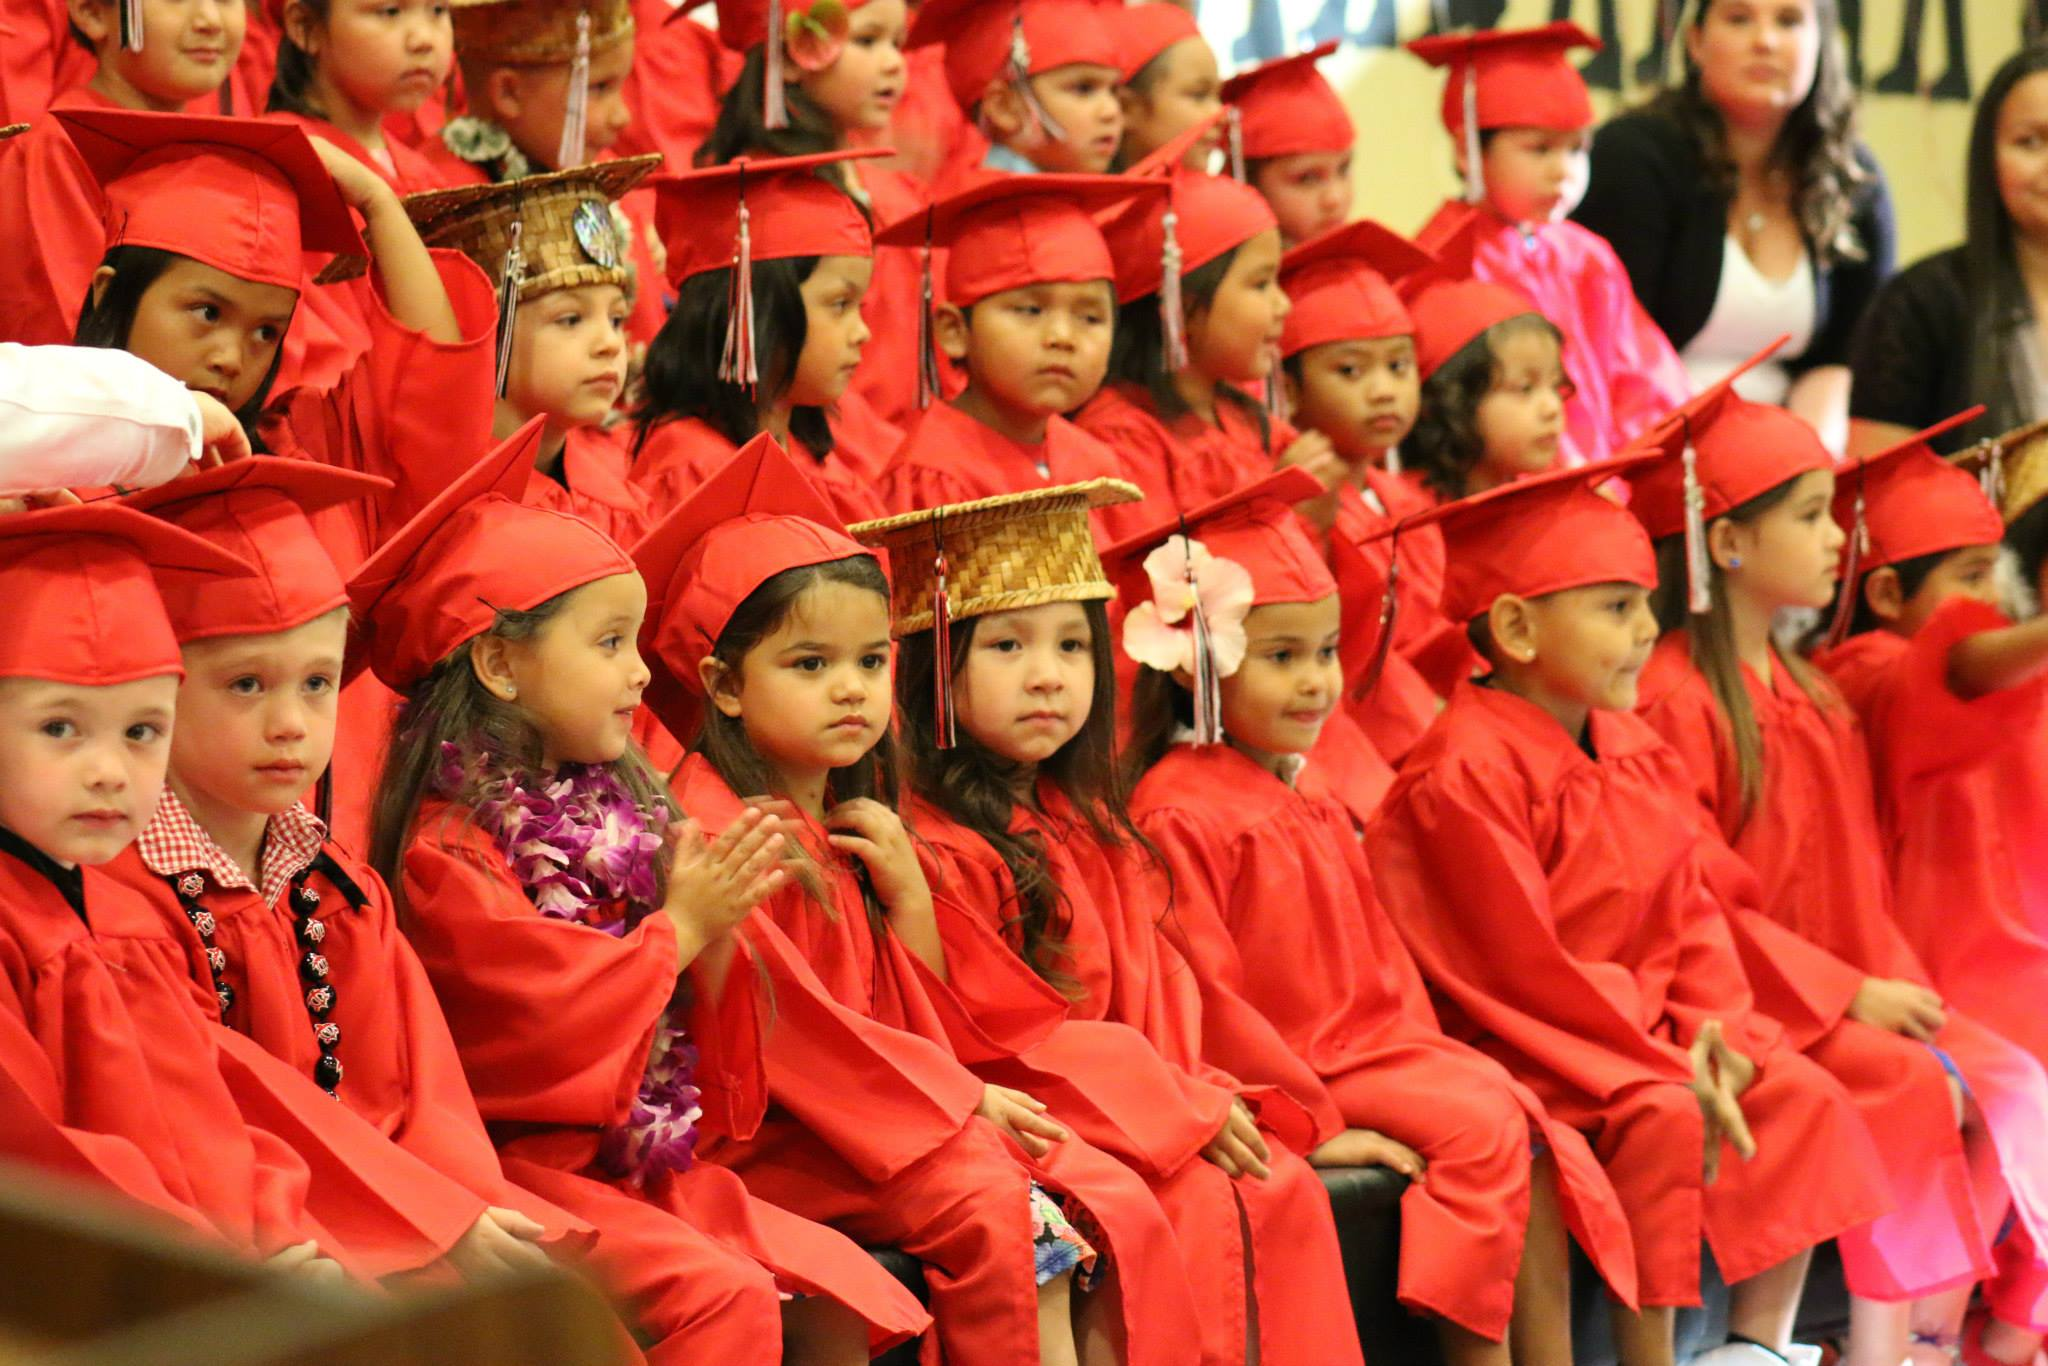 Mel Sheldon: Tulalip Tribes aim to improve education for youth